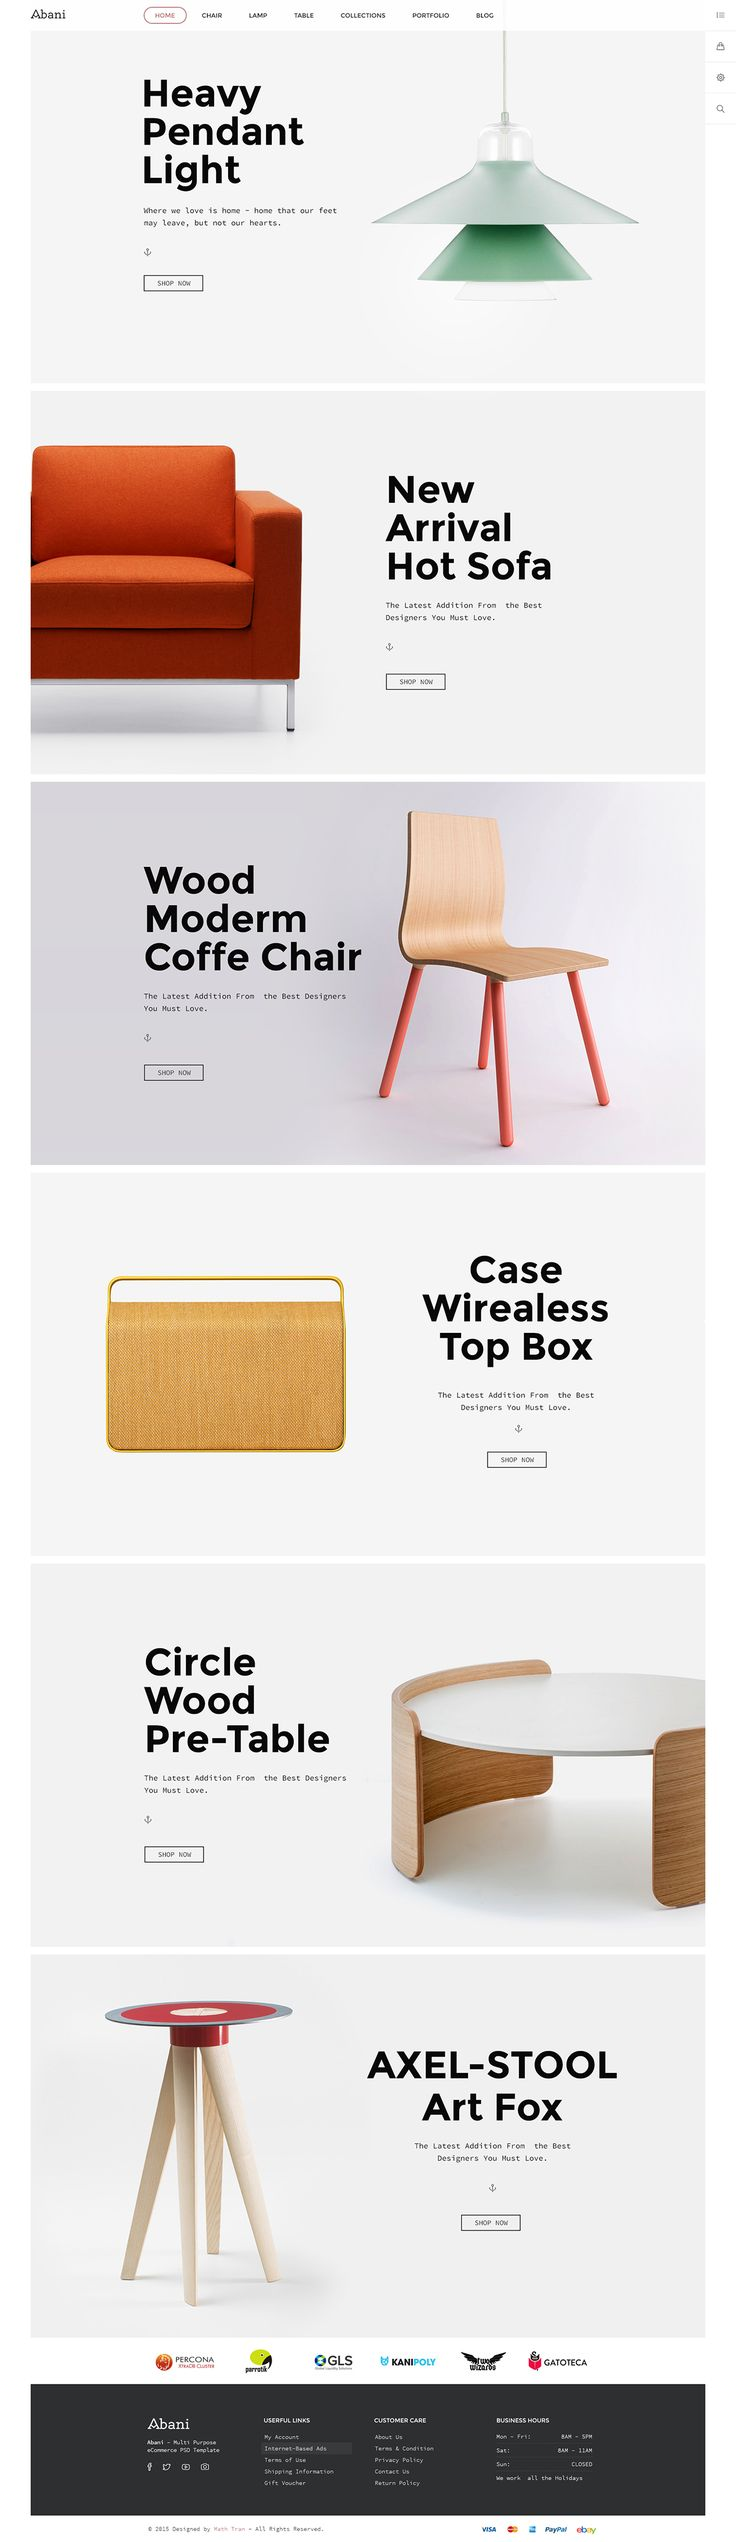 Abani – Multi Purpose eCommerce PSD Template for online Fashion, Furniture…